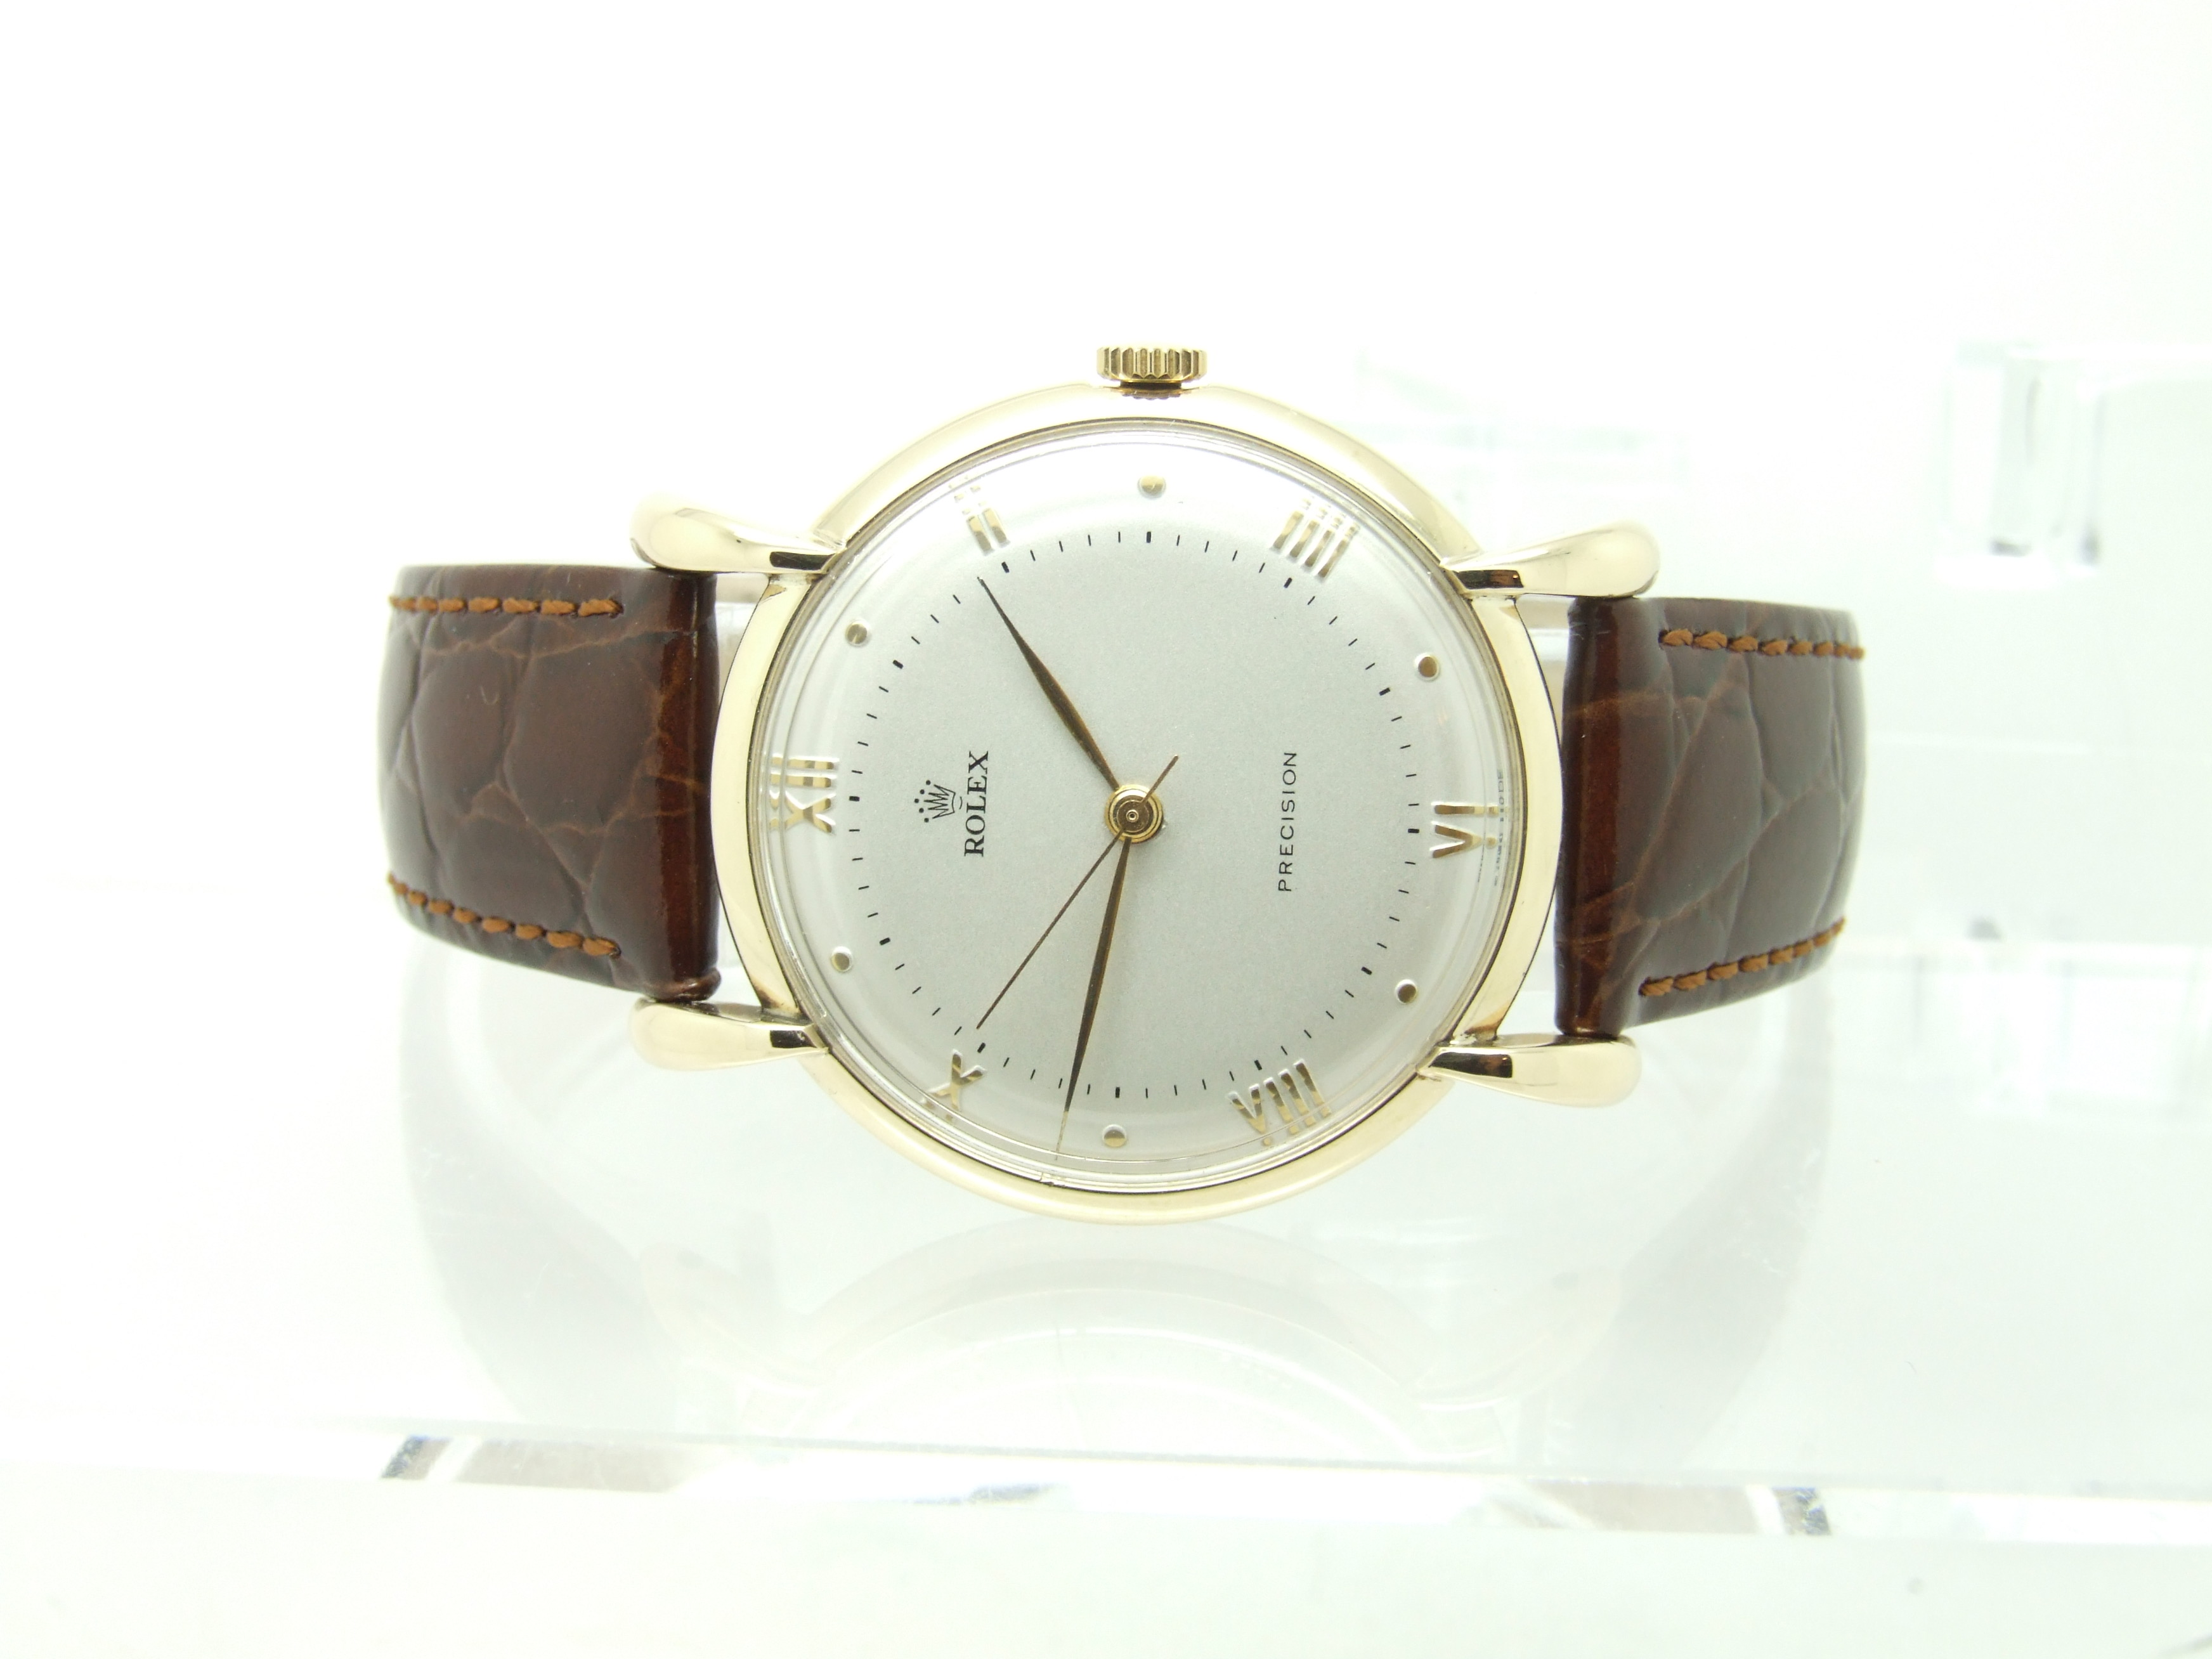 Vintage Rolex Watches For Sale Uk